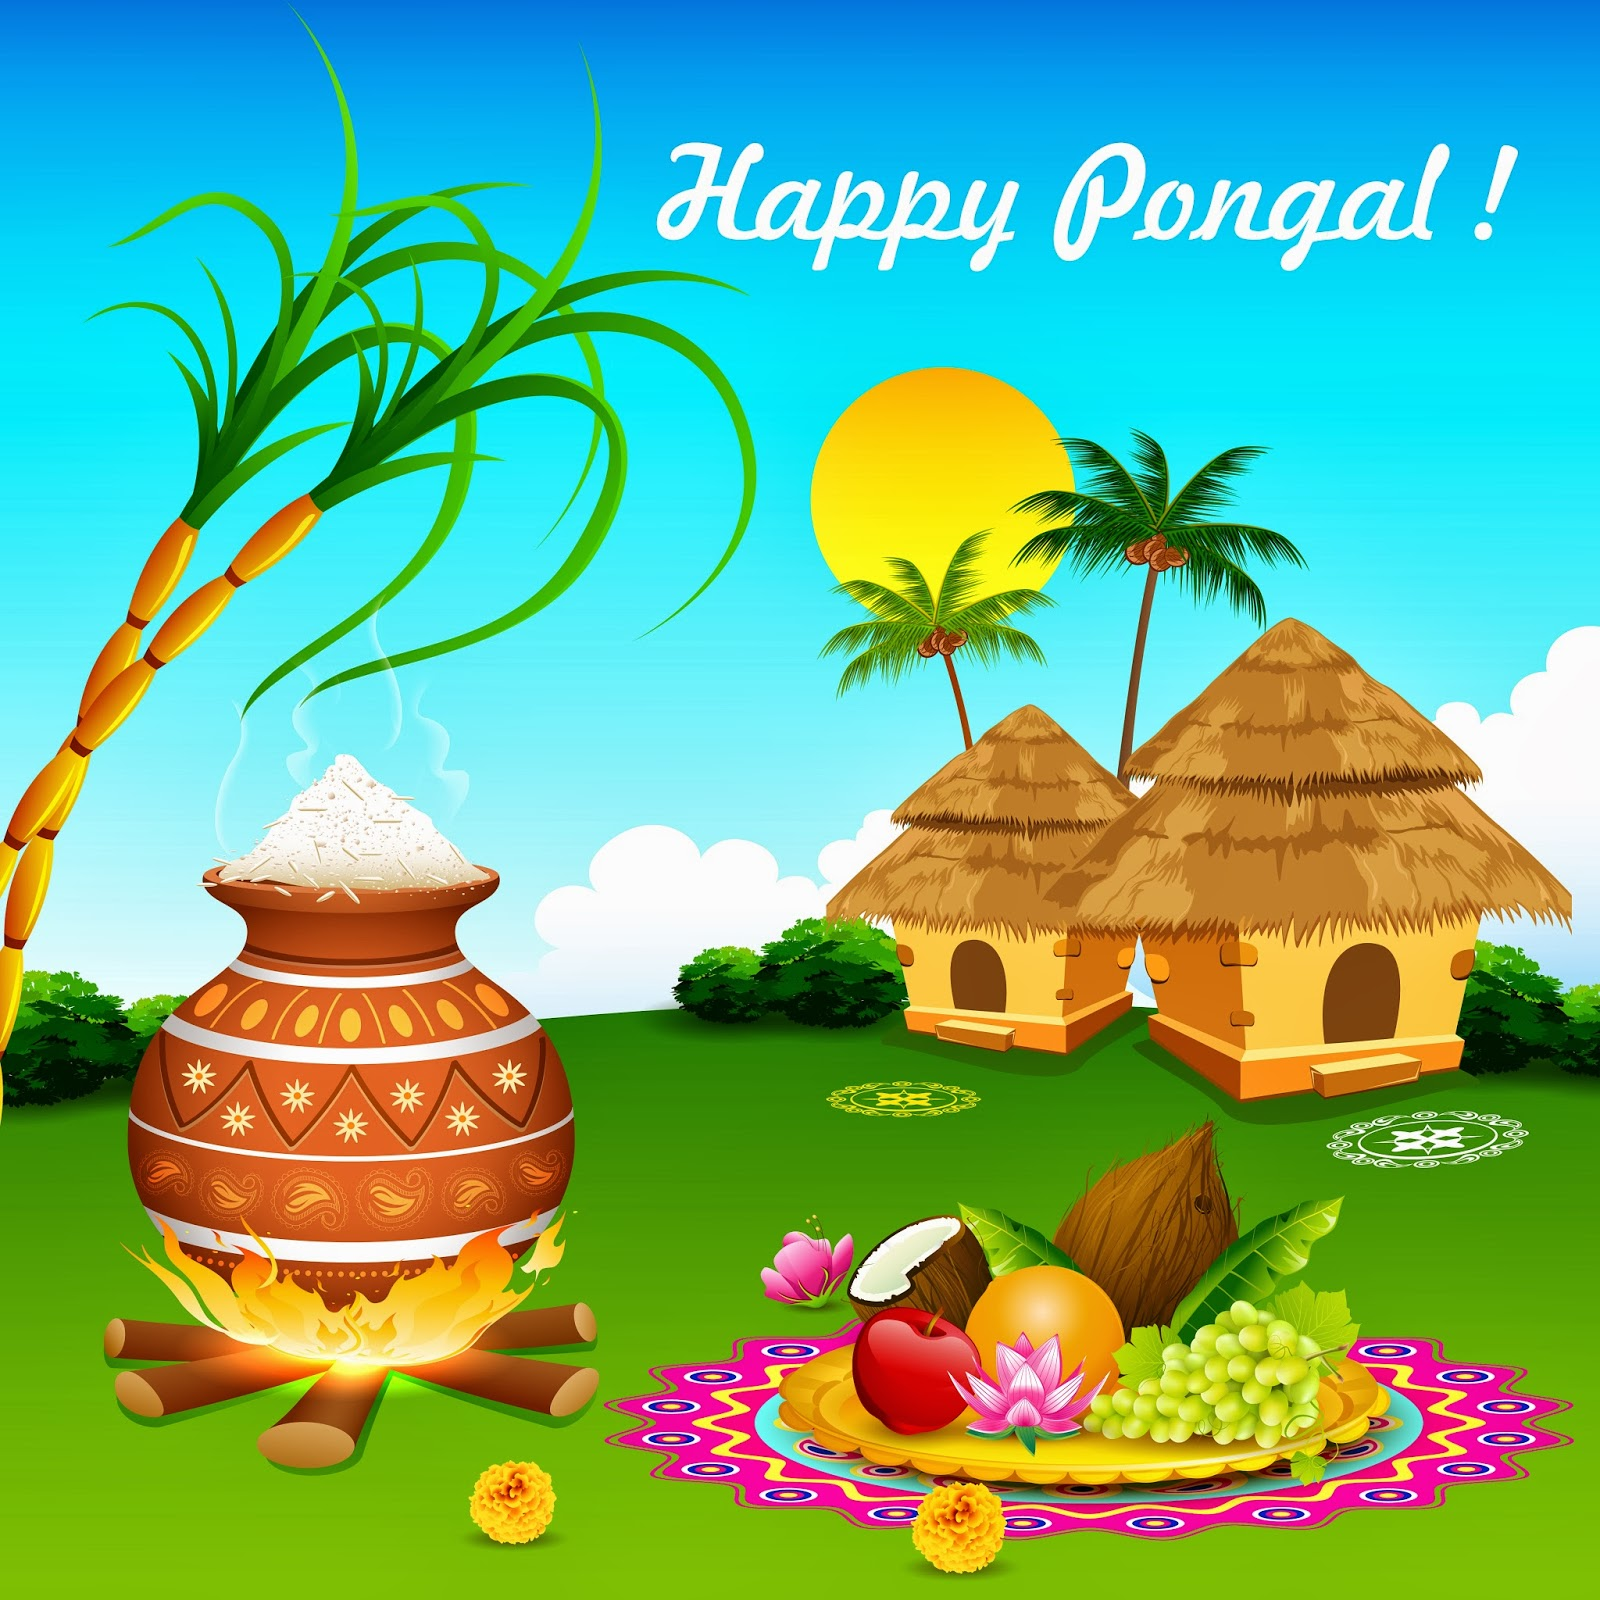 happy-makar-sankranthi-latest-hd-wallpapers-free-naveengfx.com